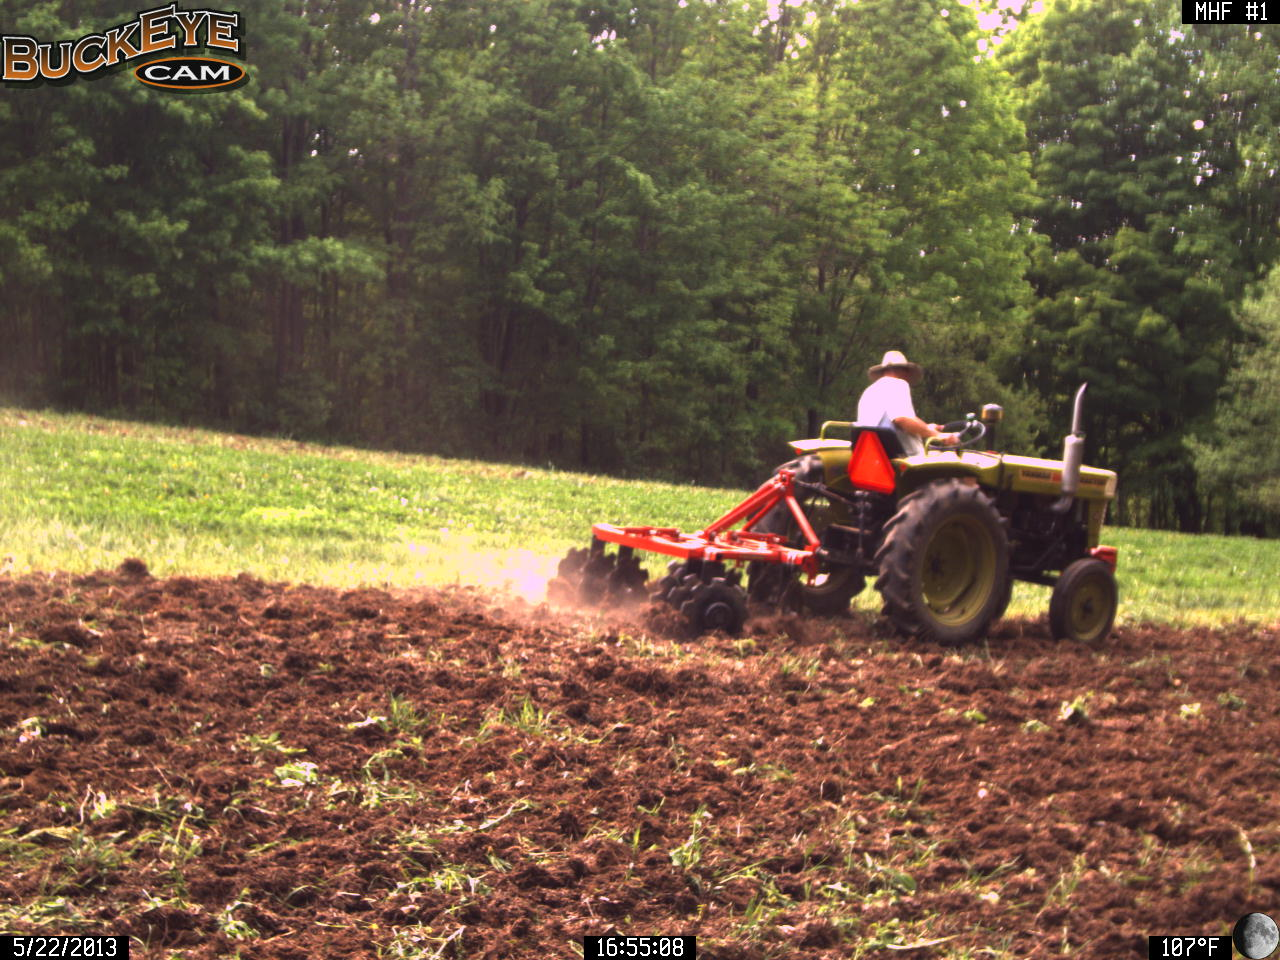 Using a Disc for Soil Preparation